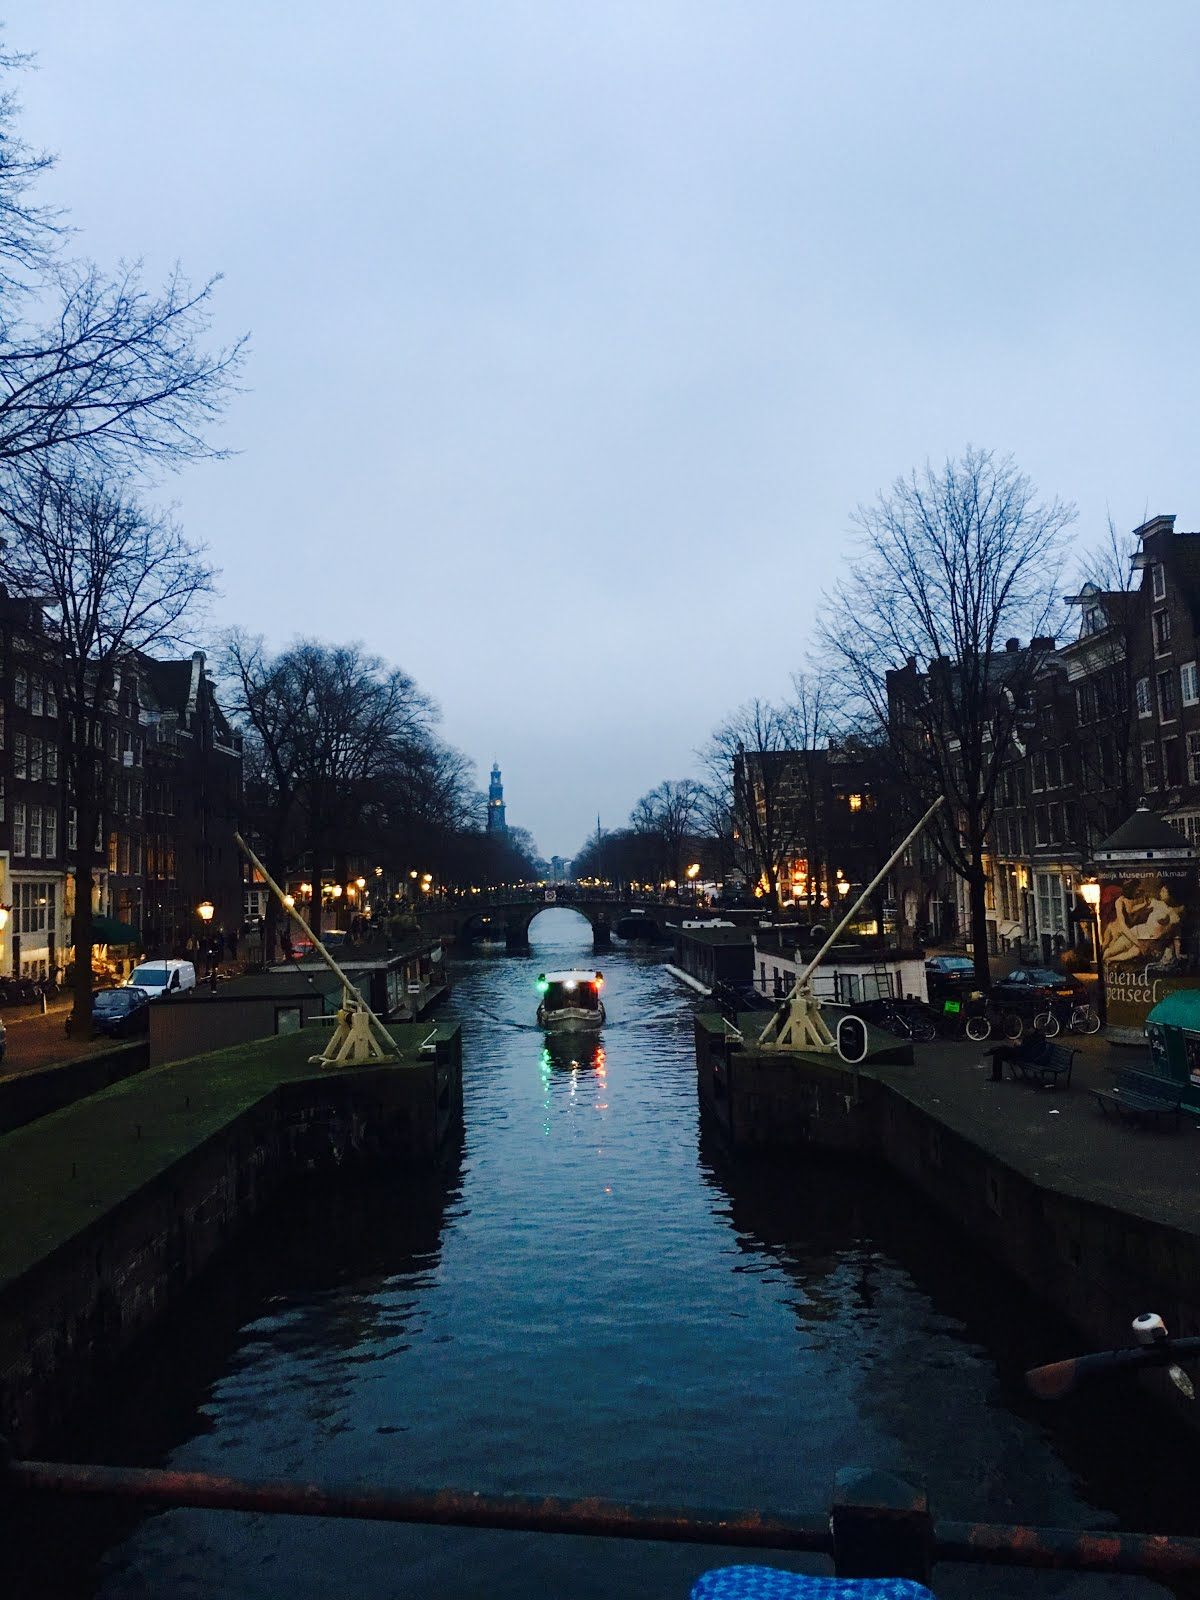 The Christmas Market Weekend Getaway in 'Dam #Amsterdam #Travel #CPtakes12trips #TravelReview